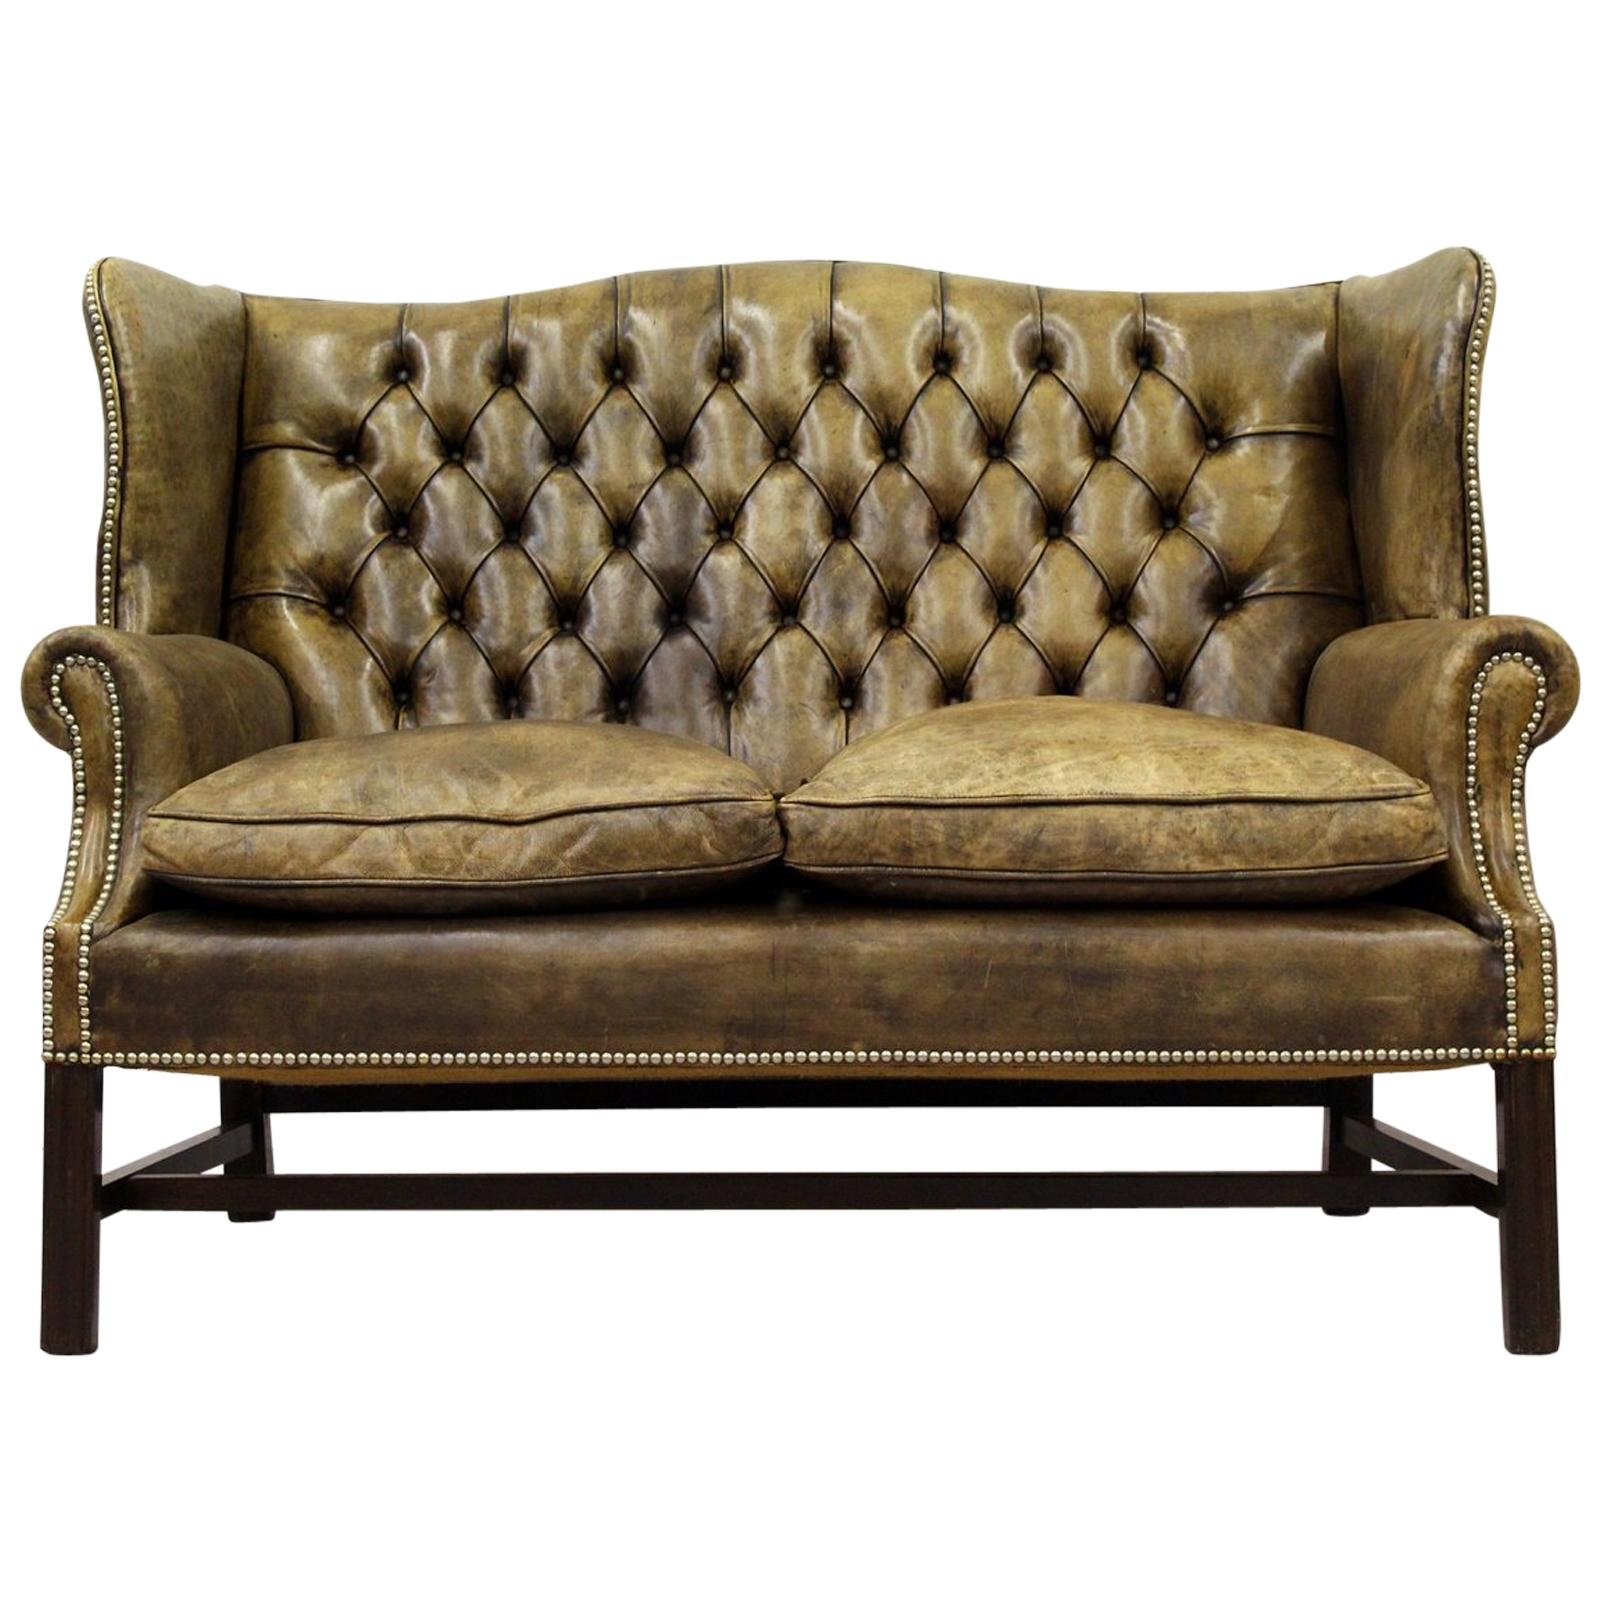 Vintage Couch Chesterfield Sofa Leather Antique Vintage Couch English Chippendale